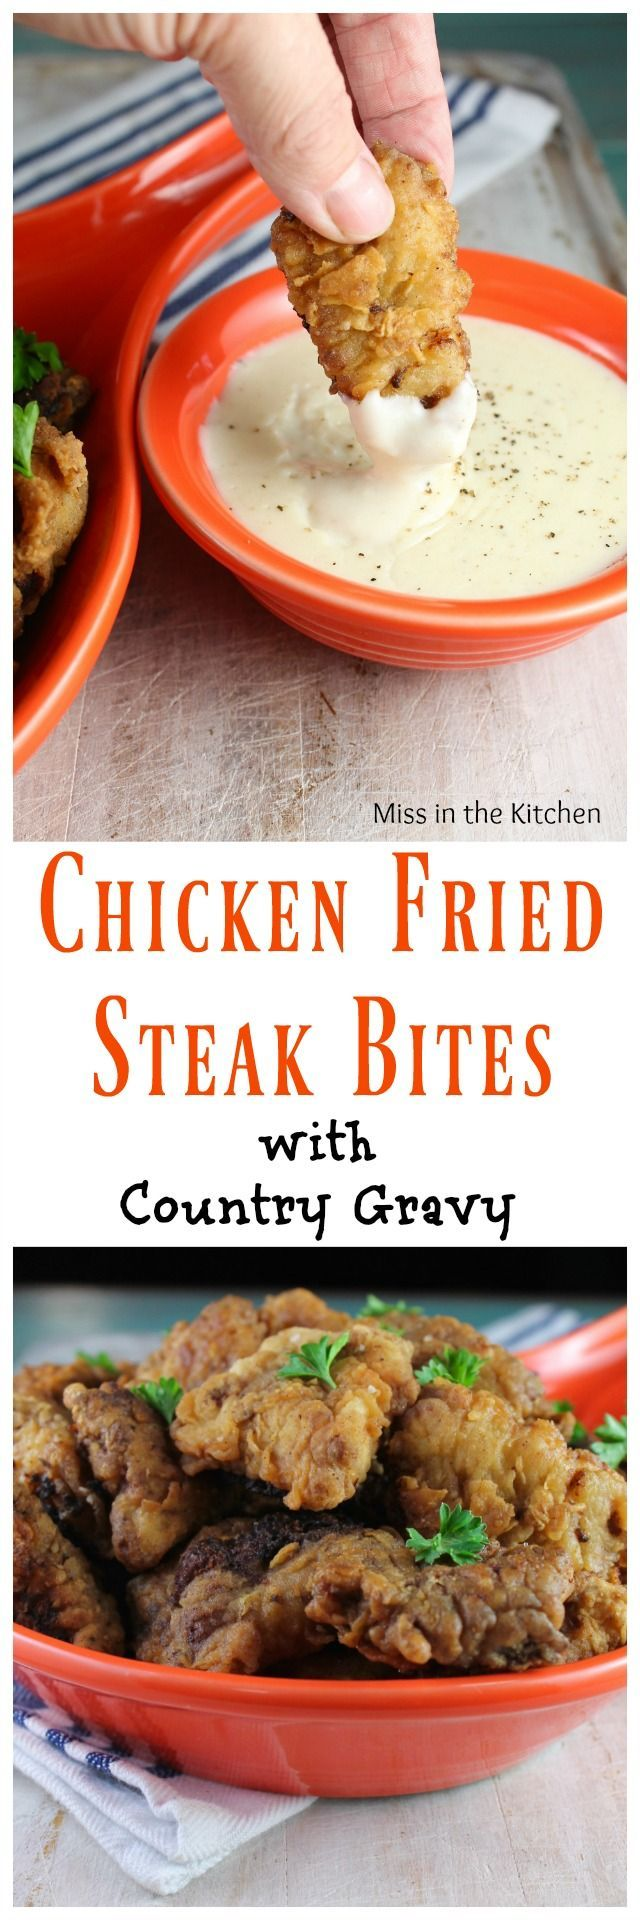 Recipe for Chicken Fried Steak Bites for the best comfort food meal! Get the recipe at http://MissintheKitchen.com